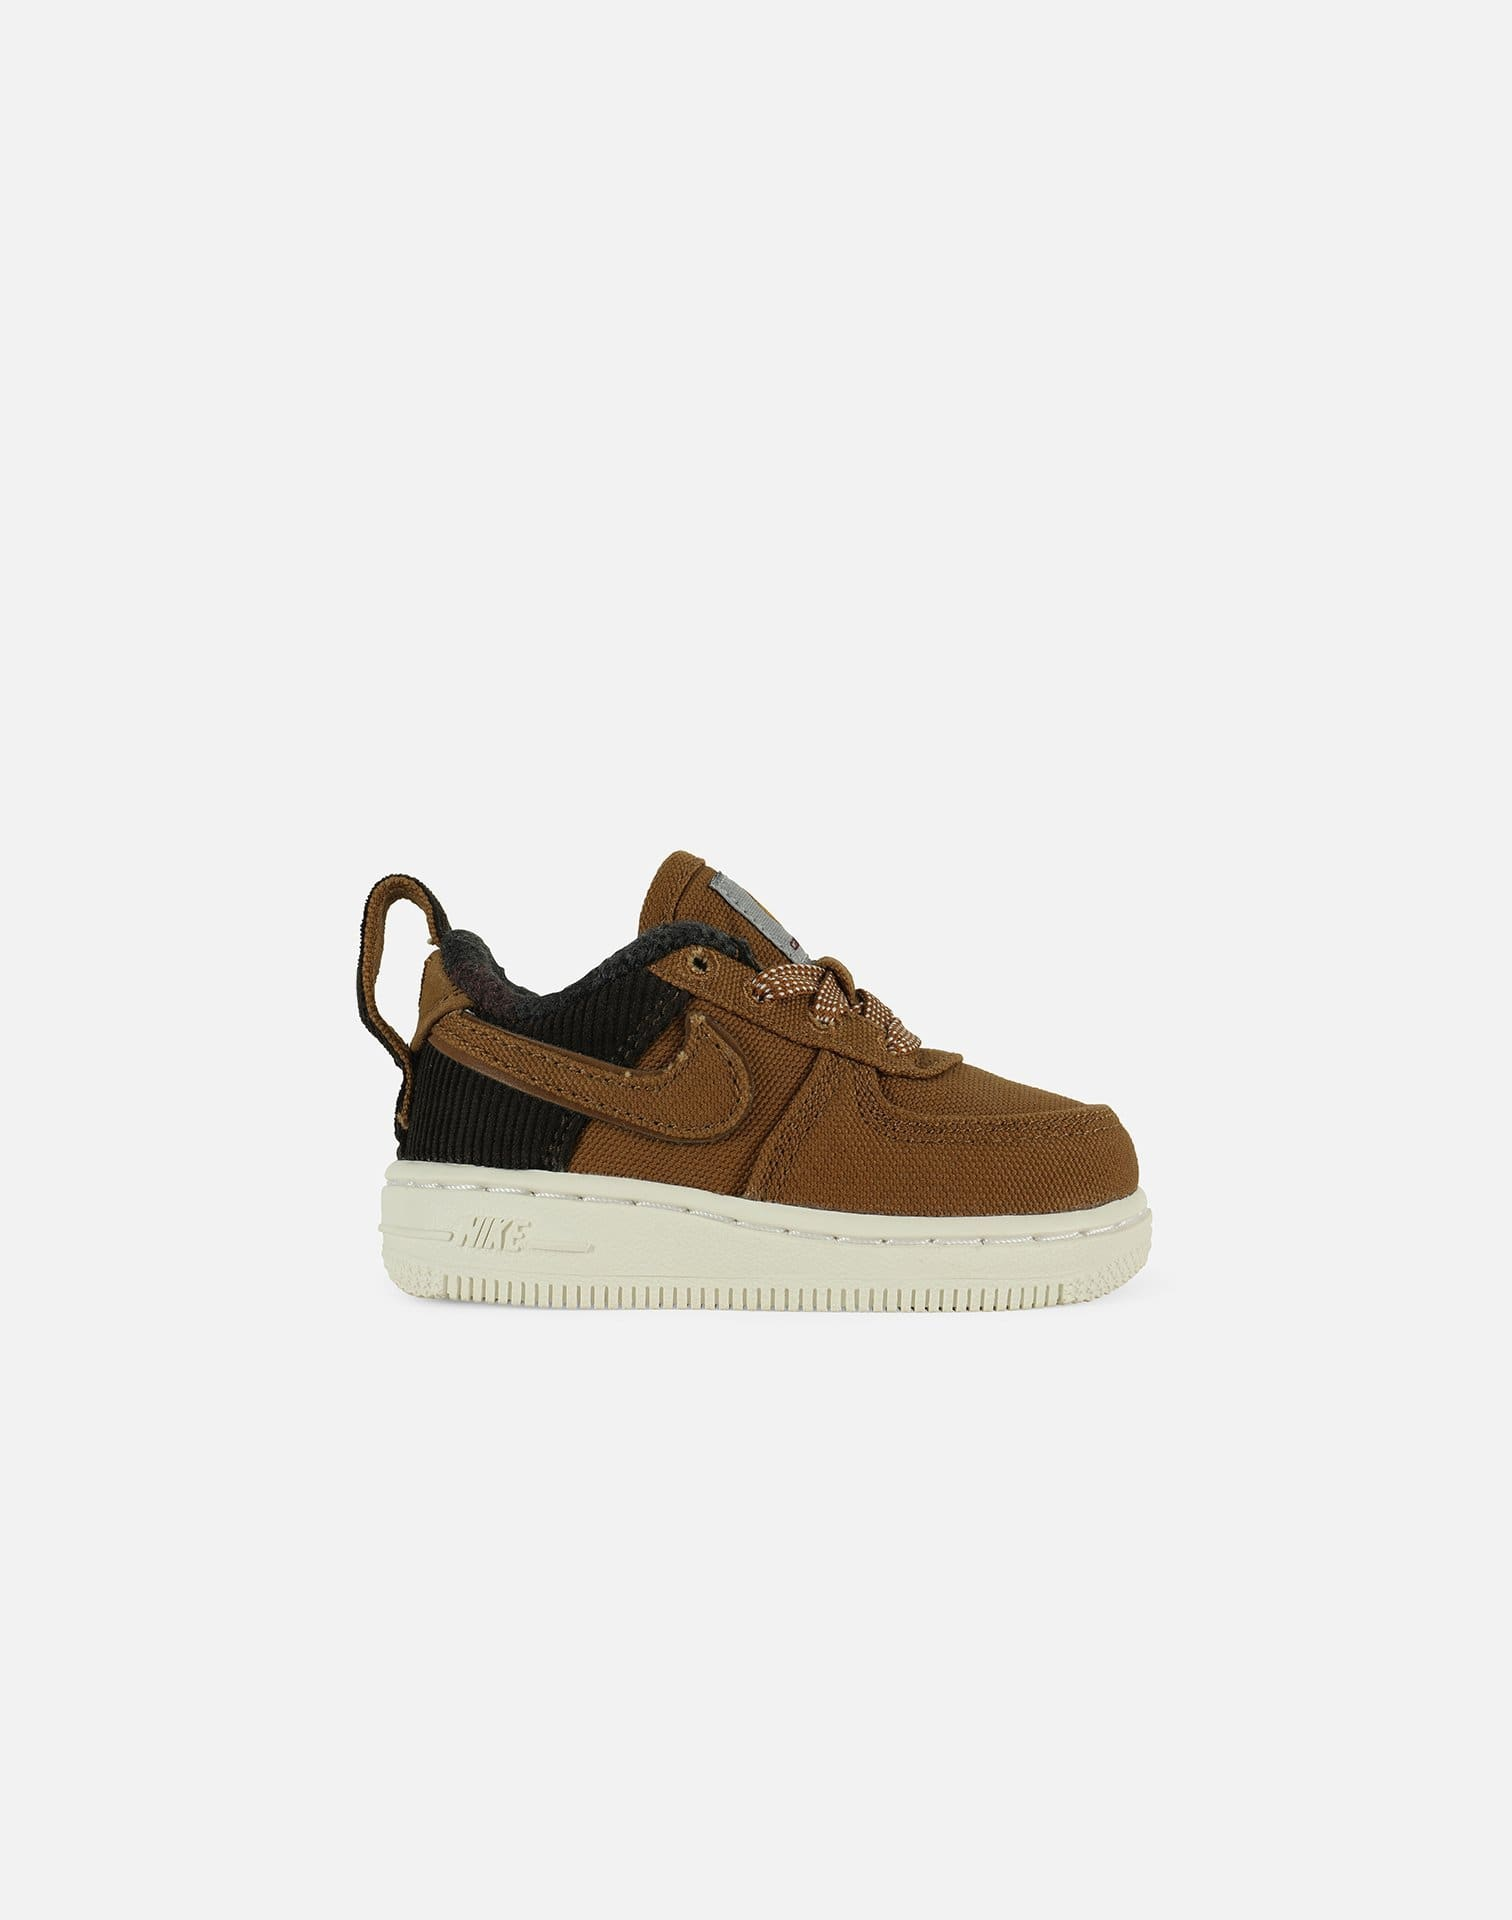 Nike Air Force 1 Low 'Carhartt WIP' Infant